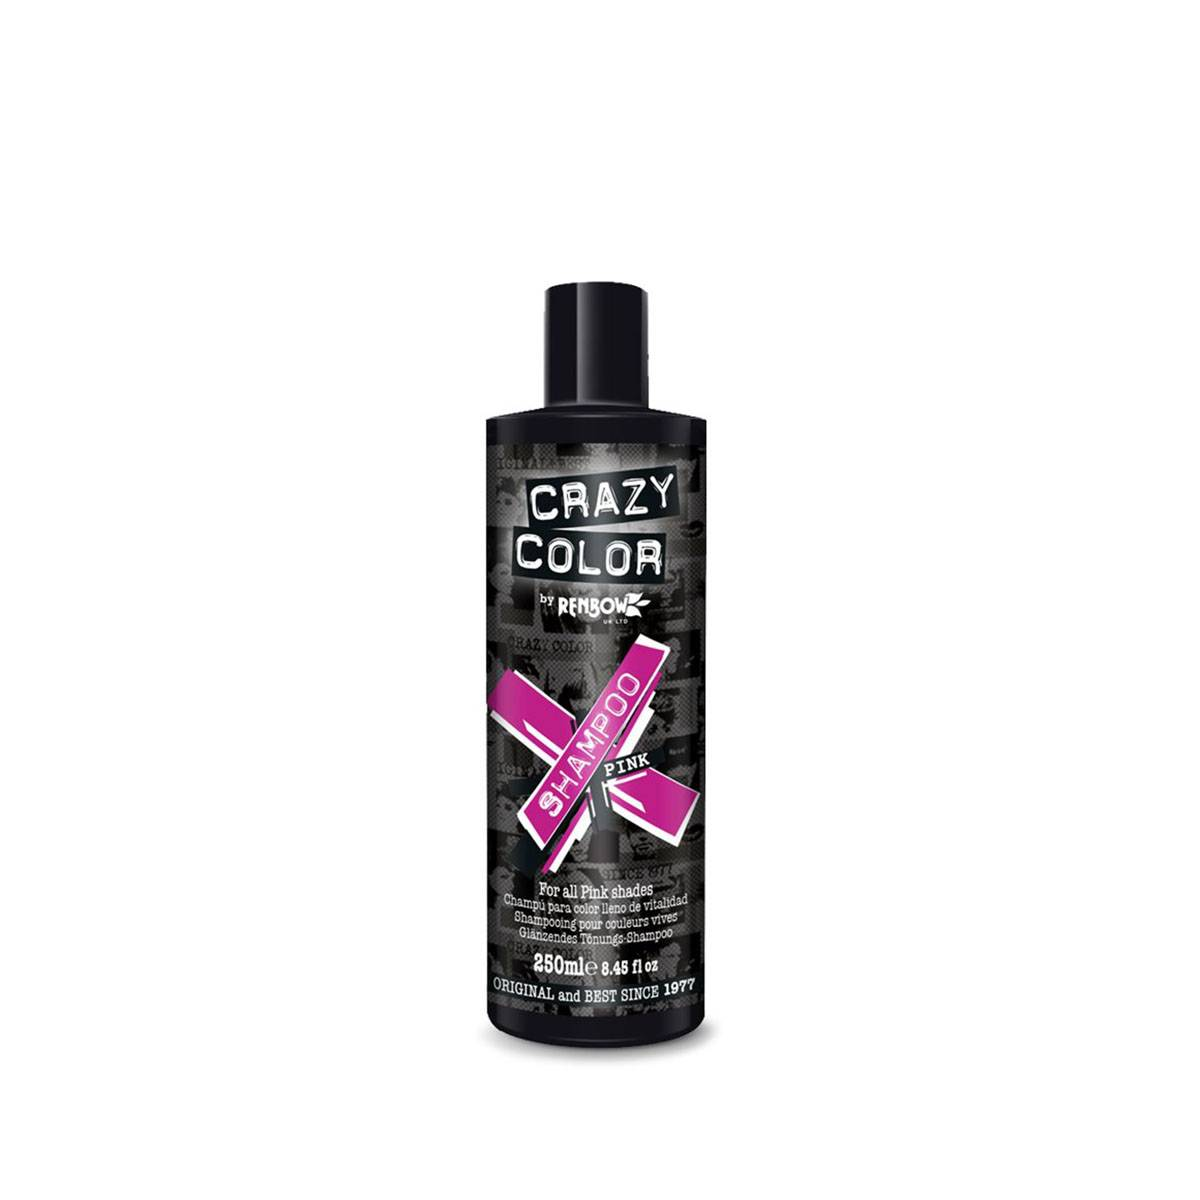 Crazy color shampoo 250ml pink** COLORE